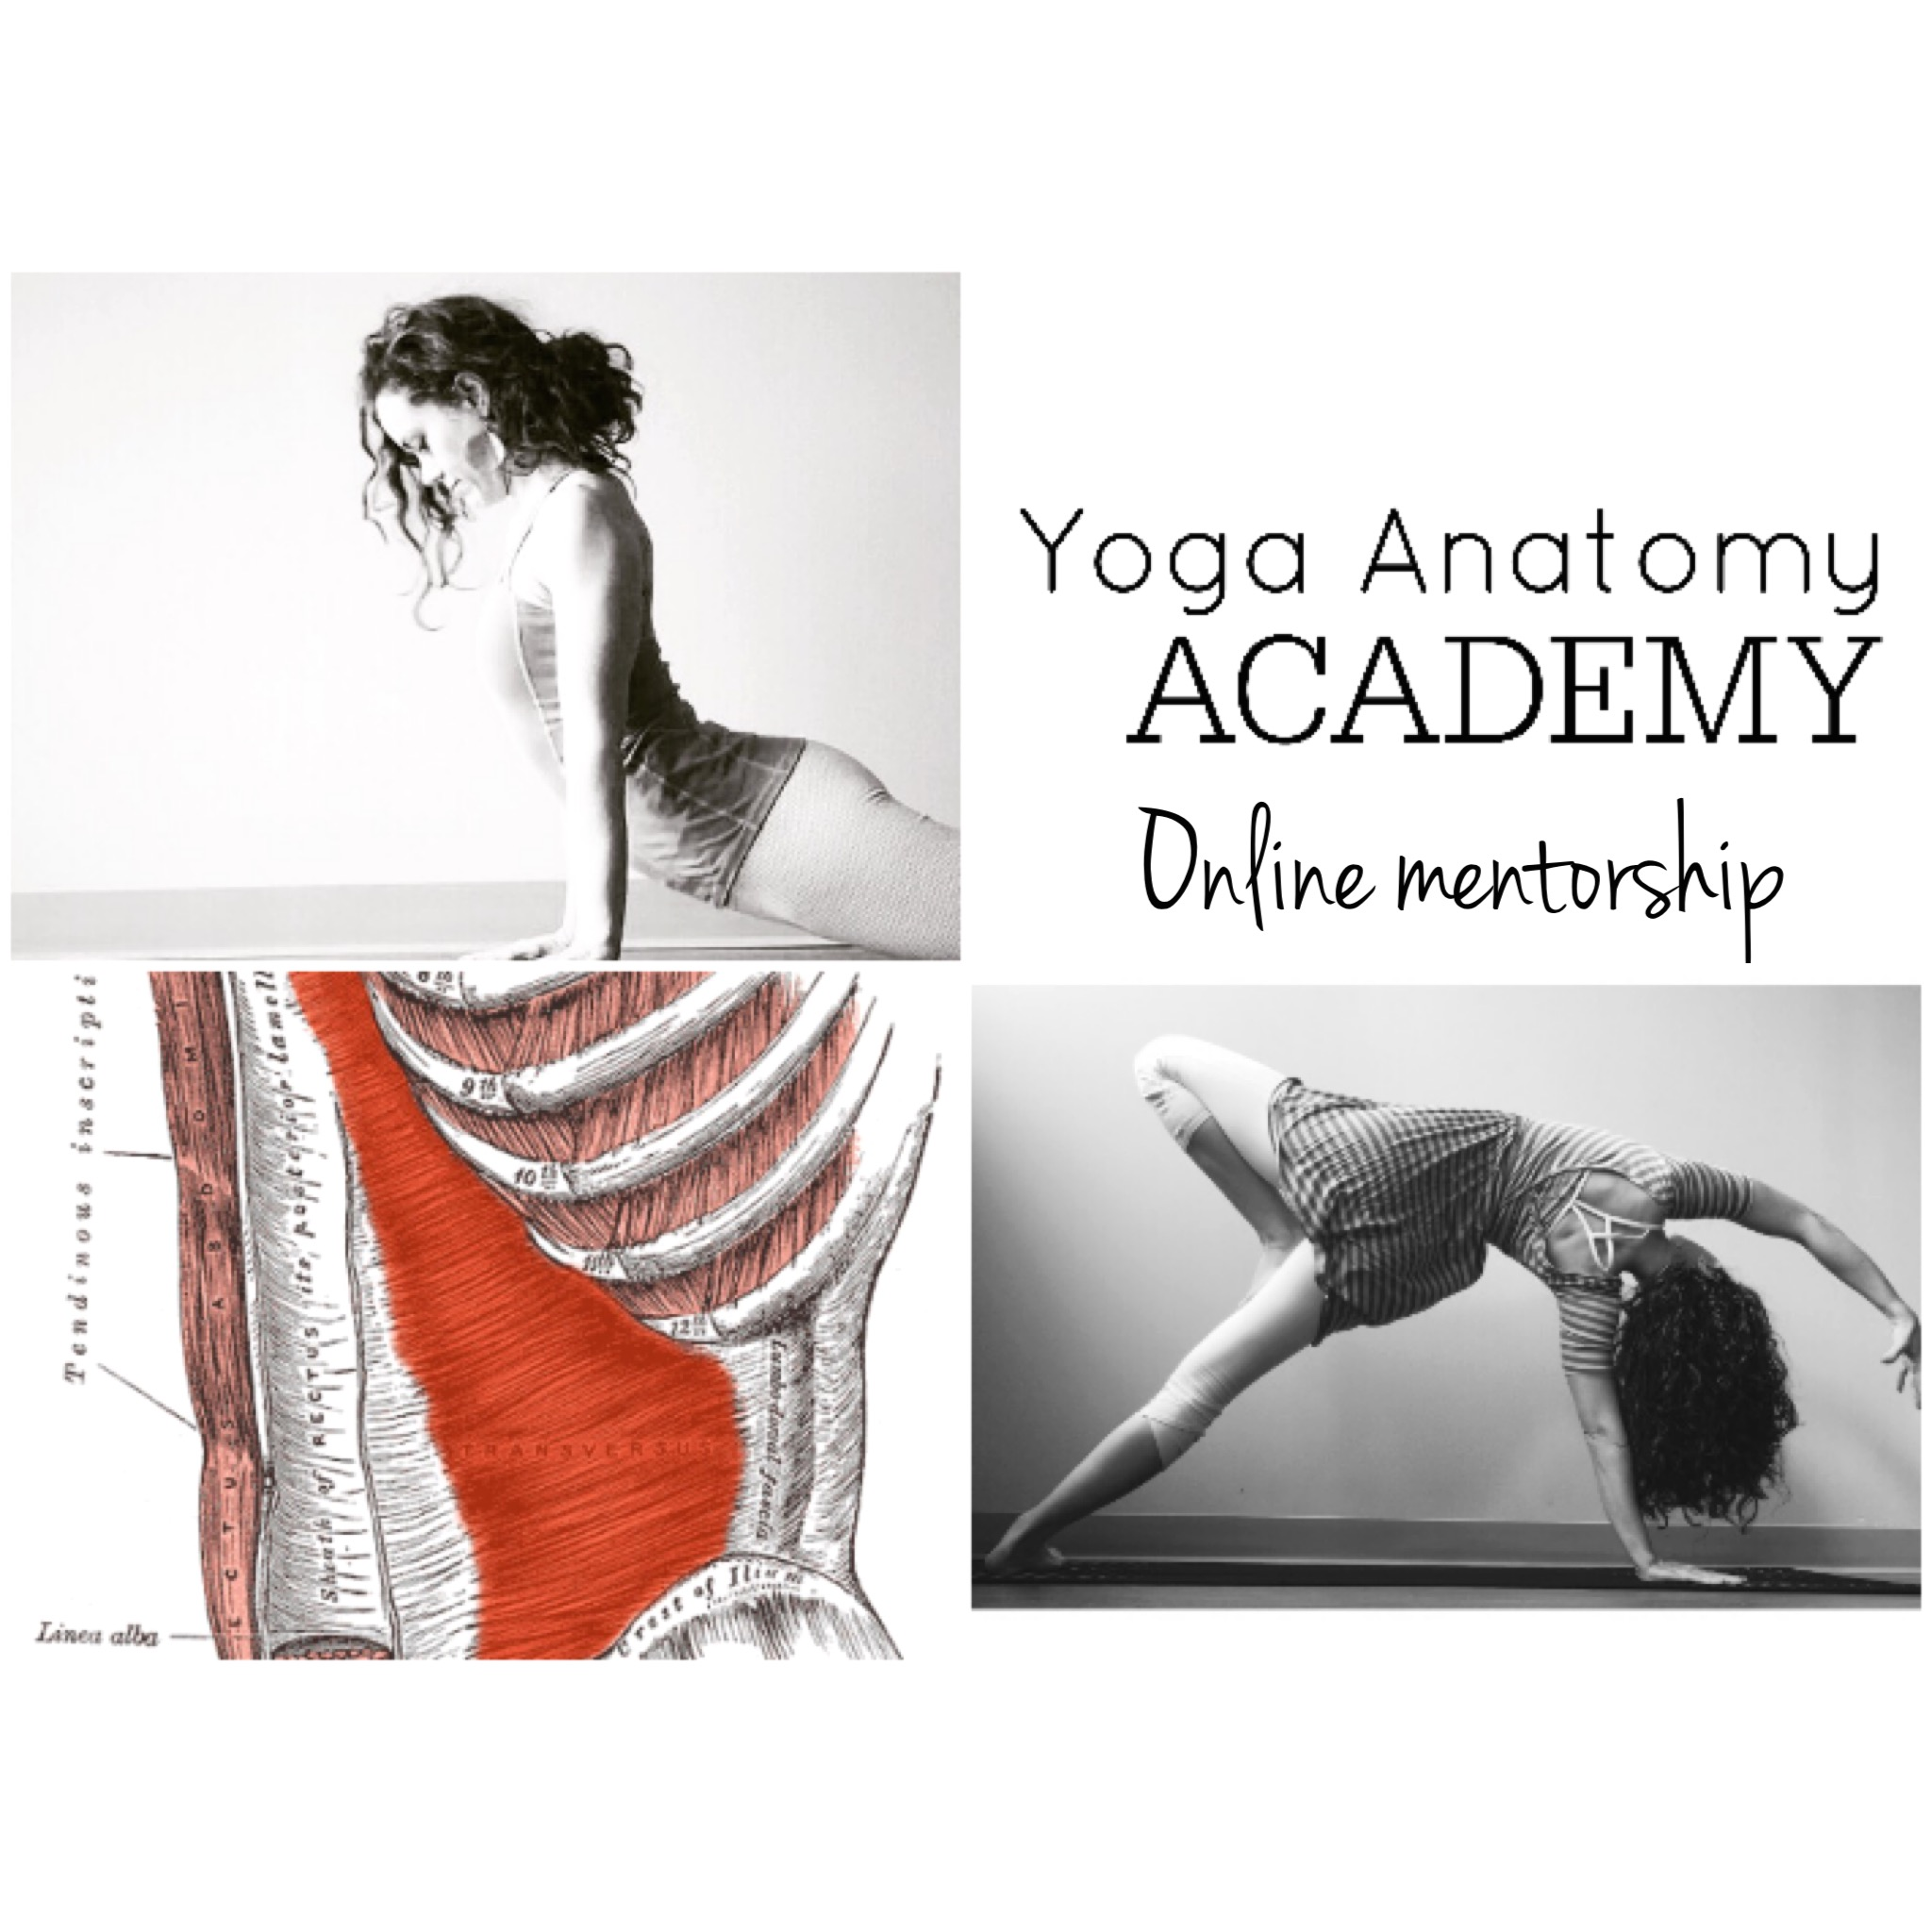 In-Depth, 12-Week Online Yoga Anatomy Mentorship with Dr. Ariele Foster